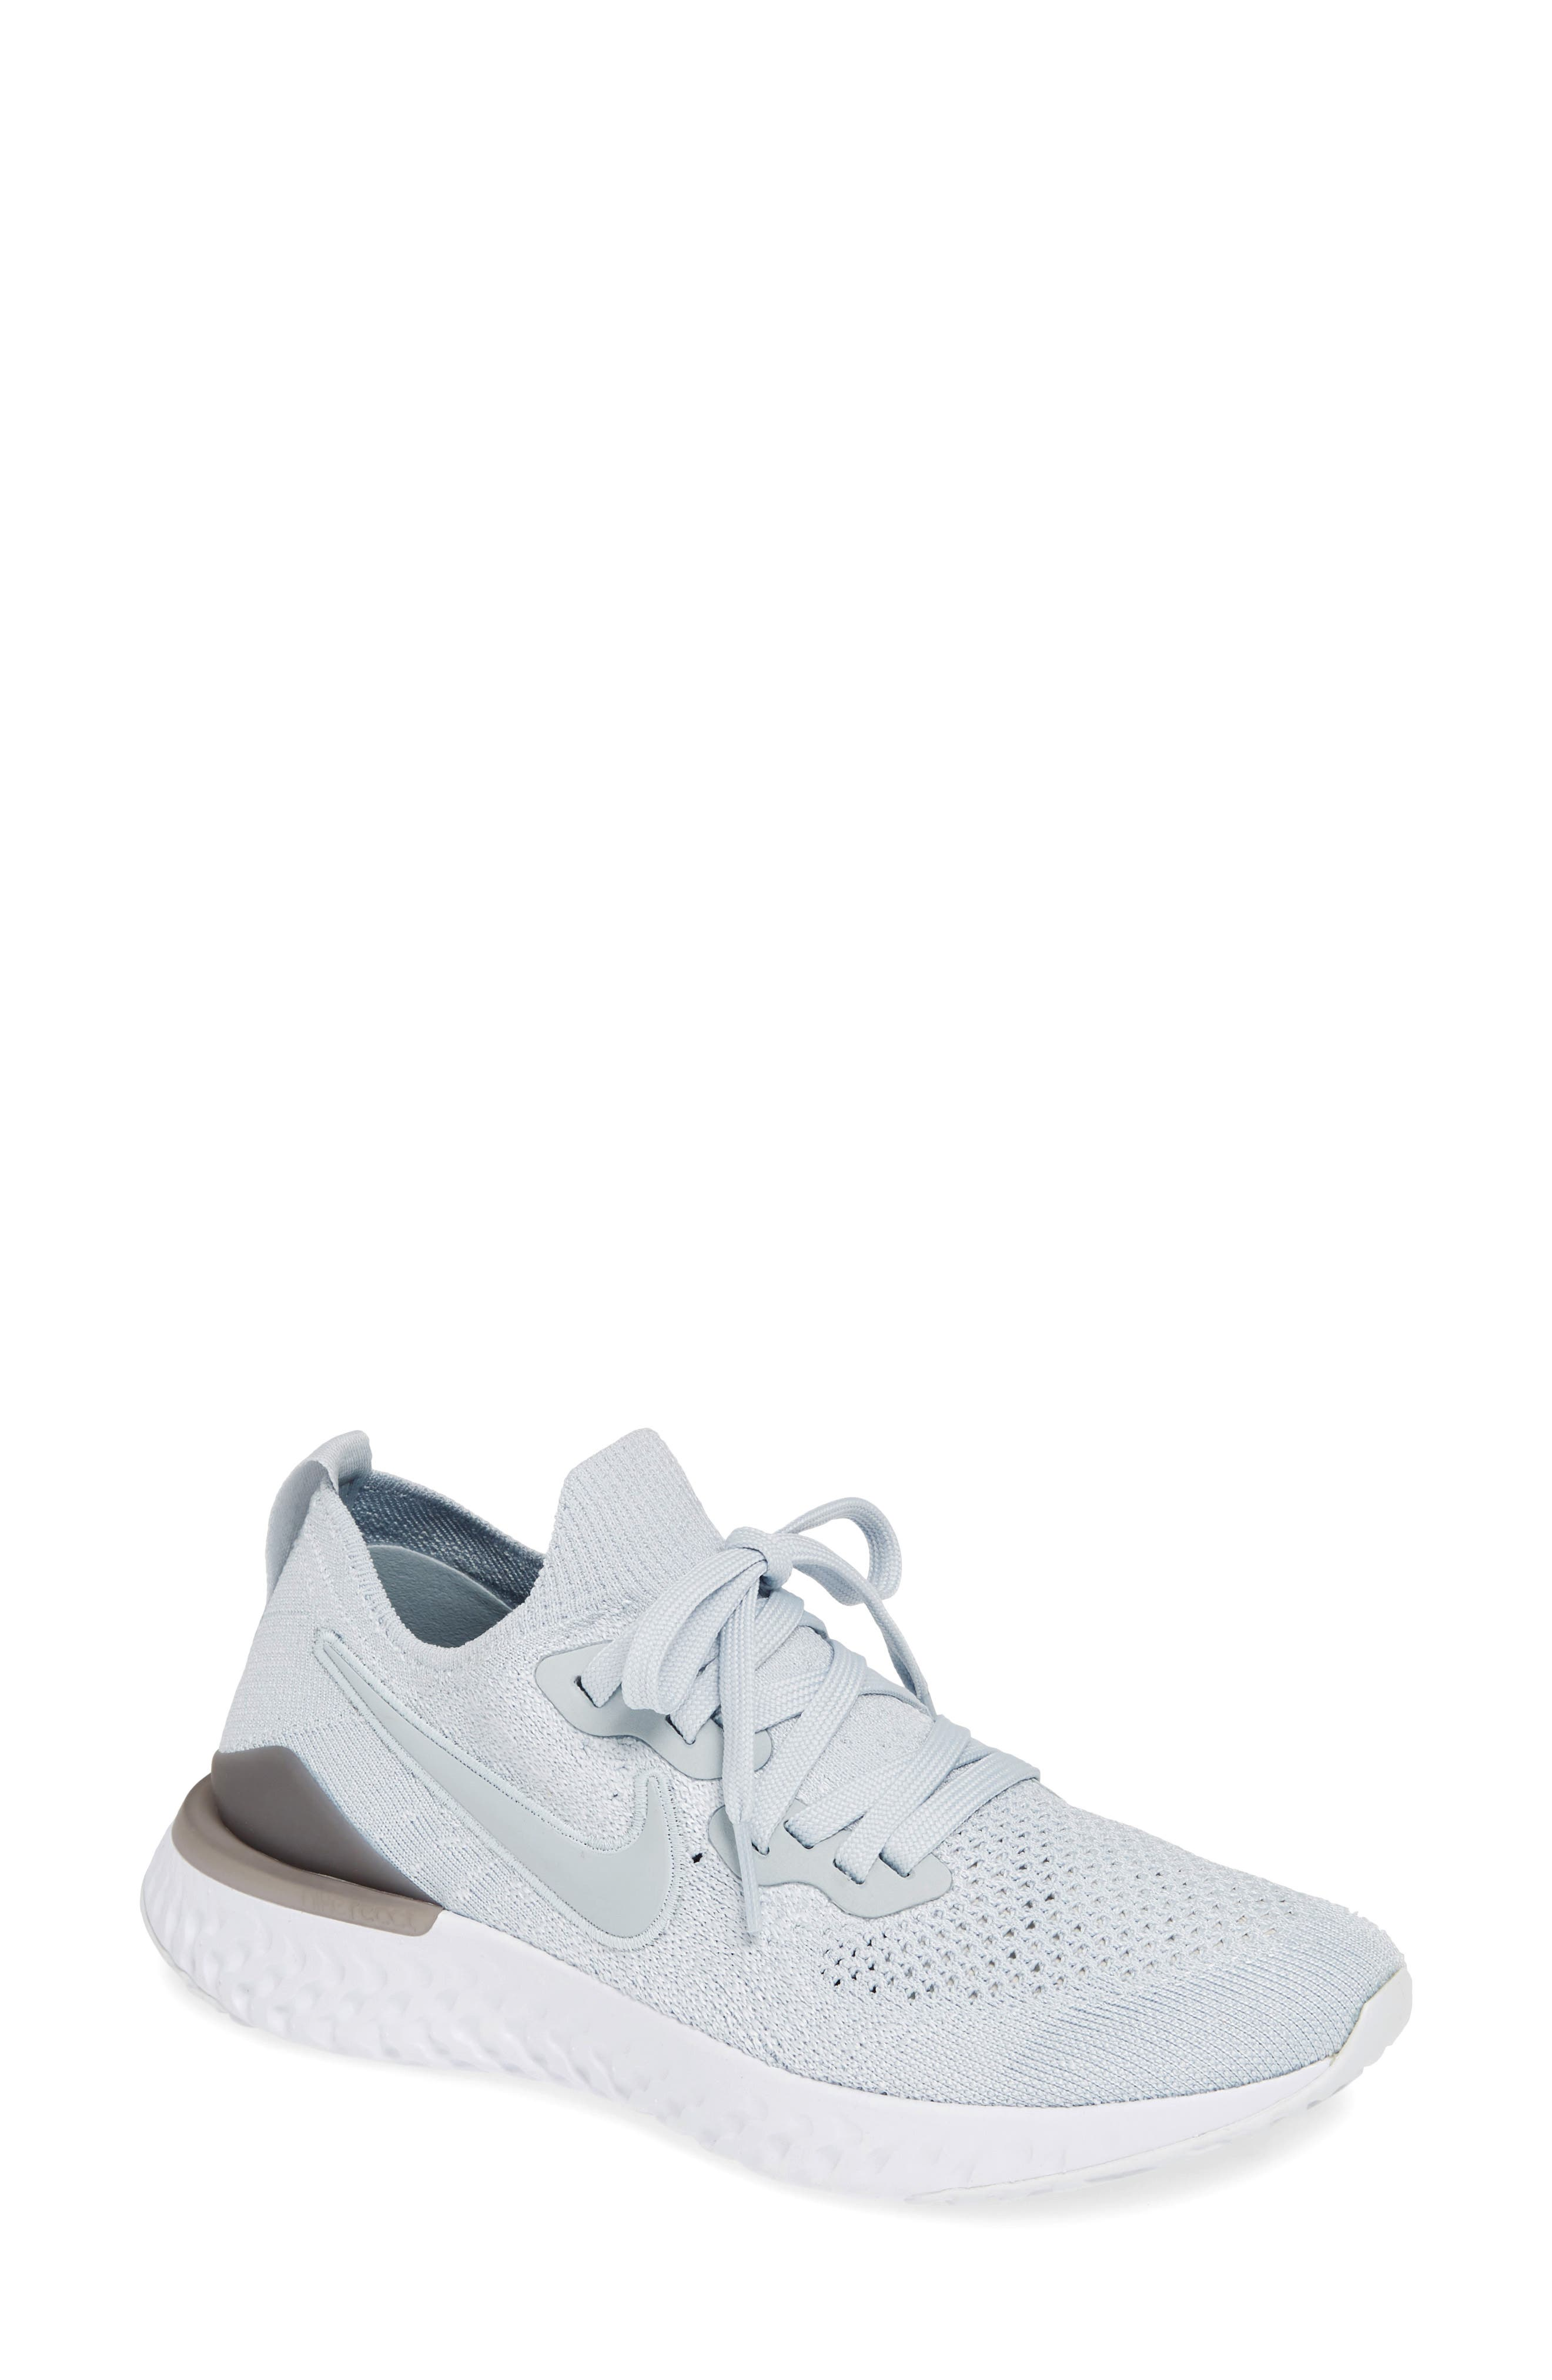 Epic React Flyknit 2 Running Shoe, Main, color, PURE PLATINUM/ WOLF GREY